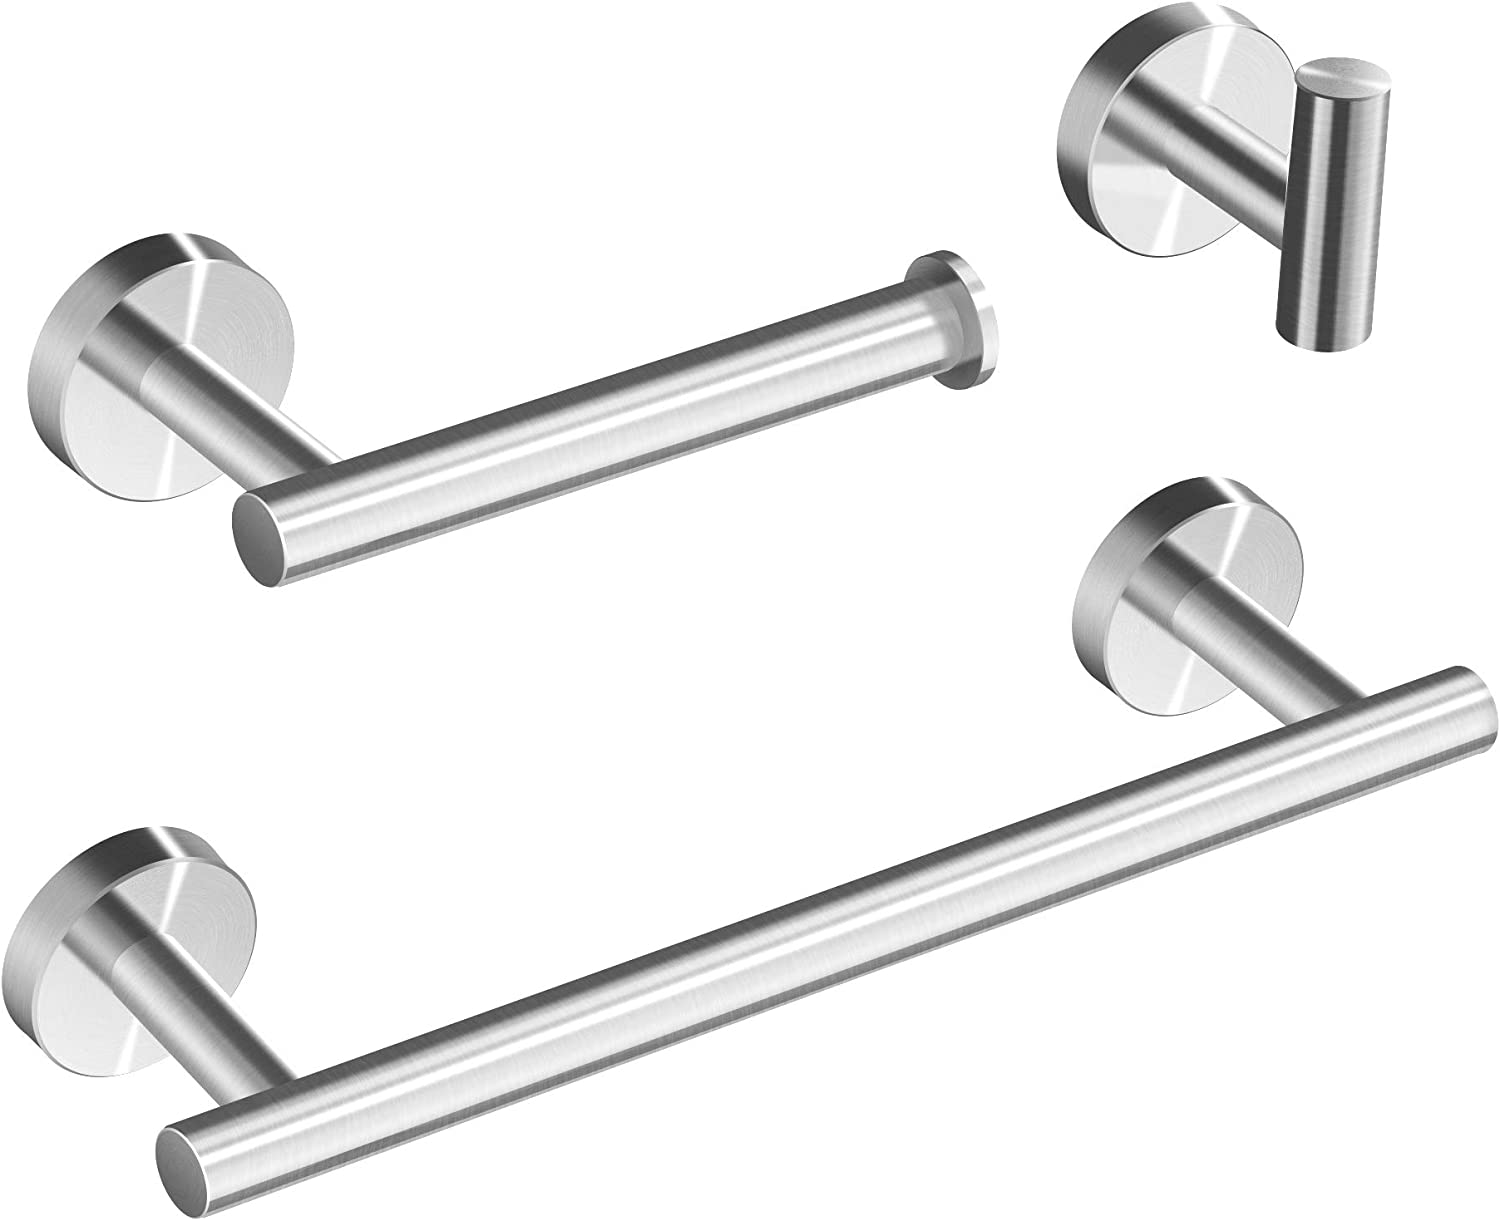 Piece Set Includes Hand Towel Ring Marmolux Acc Bathroom Hardware Accessories Set Stainless Steel Brushed Nickel 3 Toilet Paper Holder Robe Hook Heavy Duty Paper Towel Holder Hanger